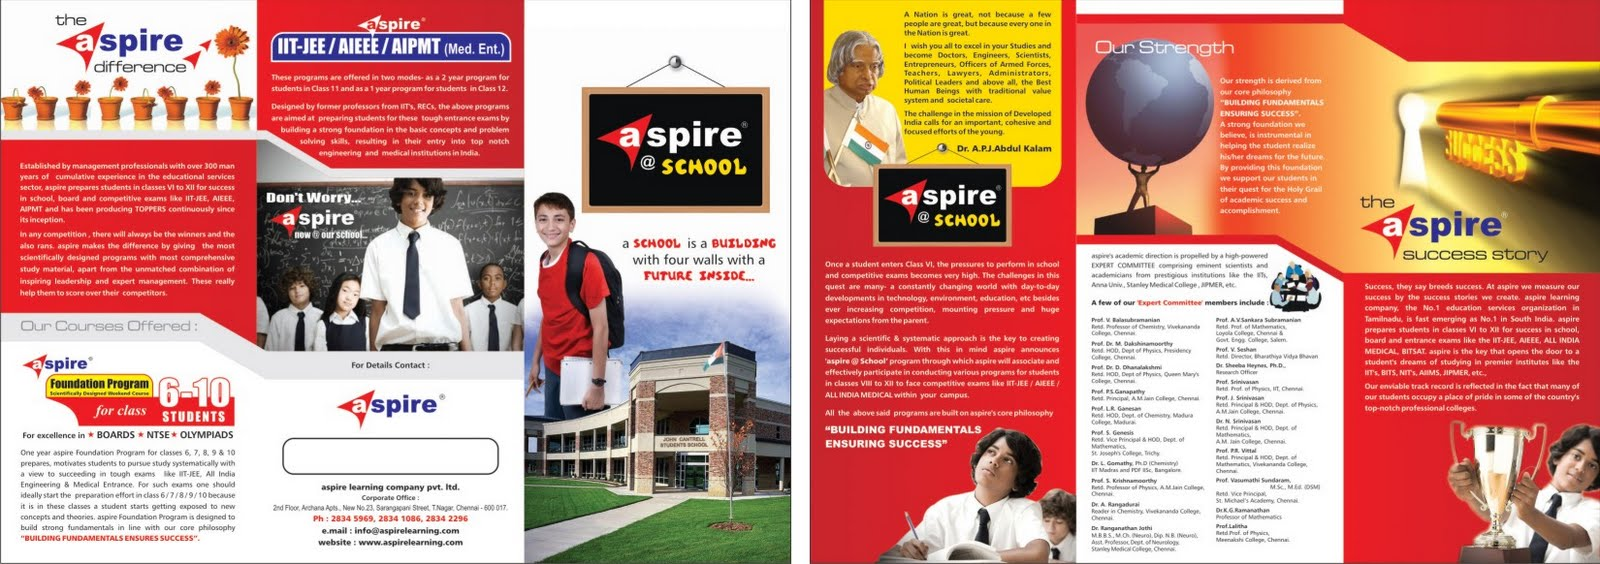 Sanjeev Sample Designs: aspire @ School Brochure